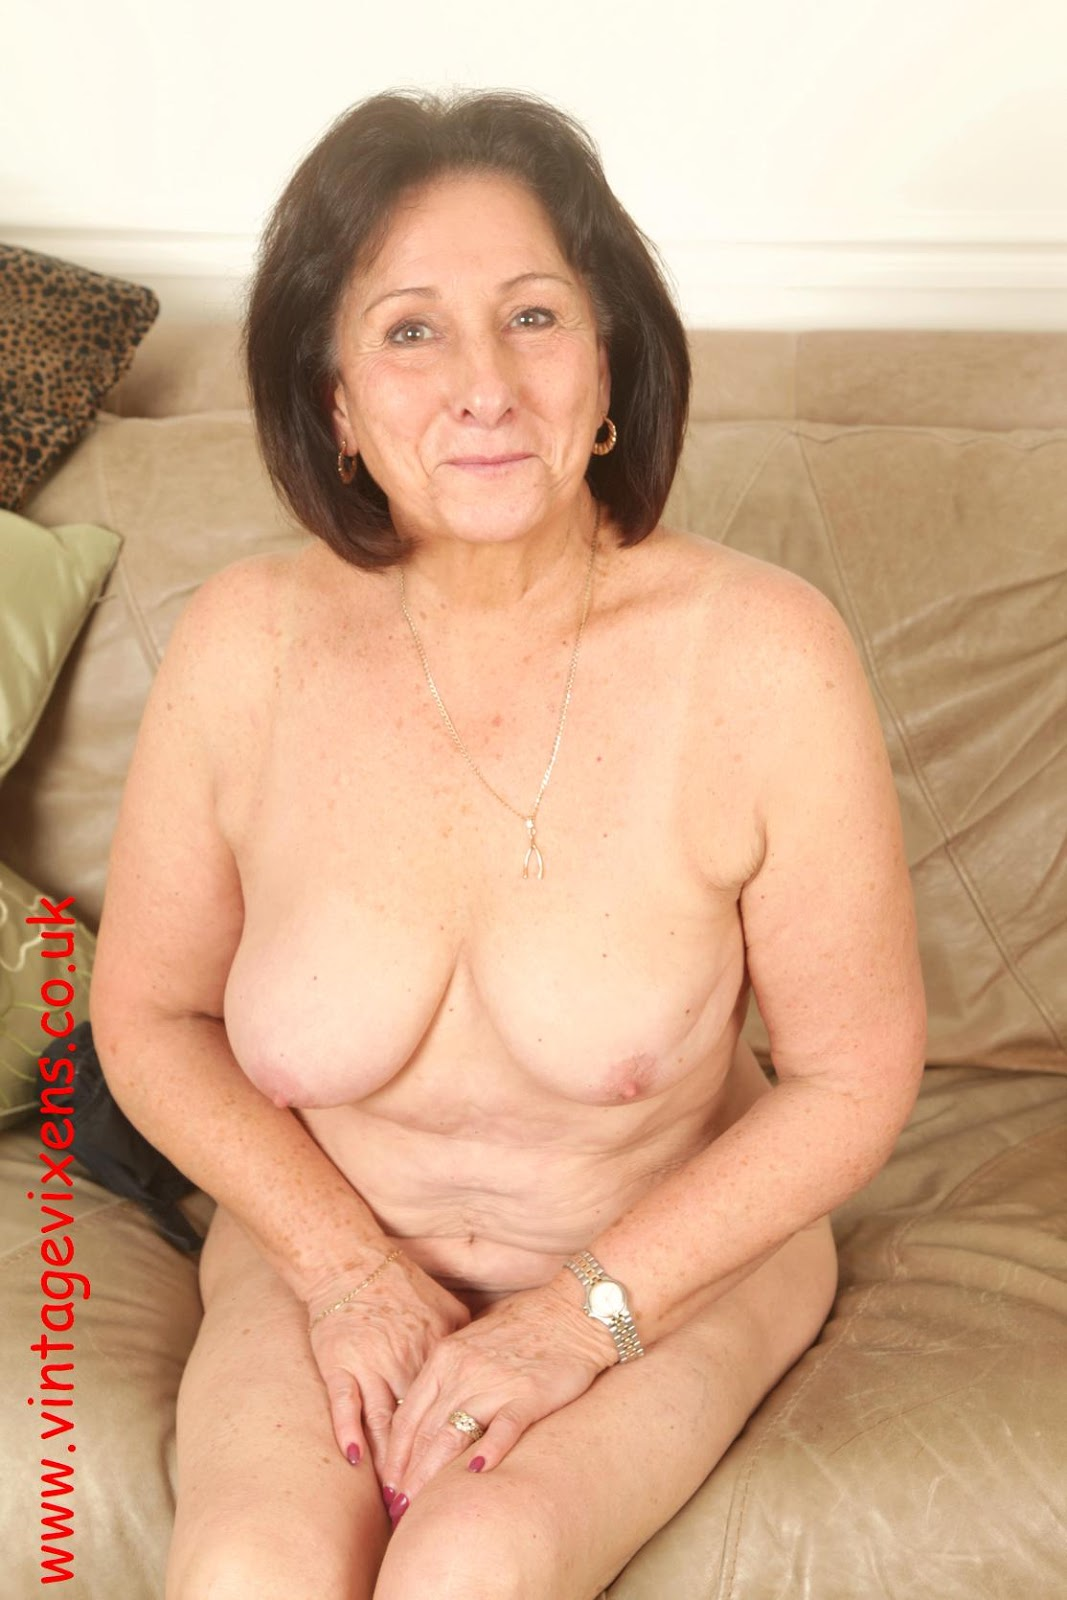 Nude pictures of old women